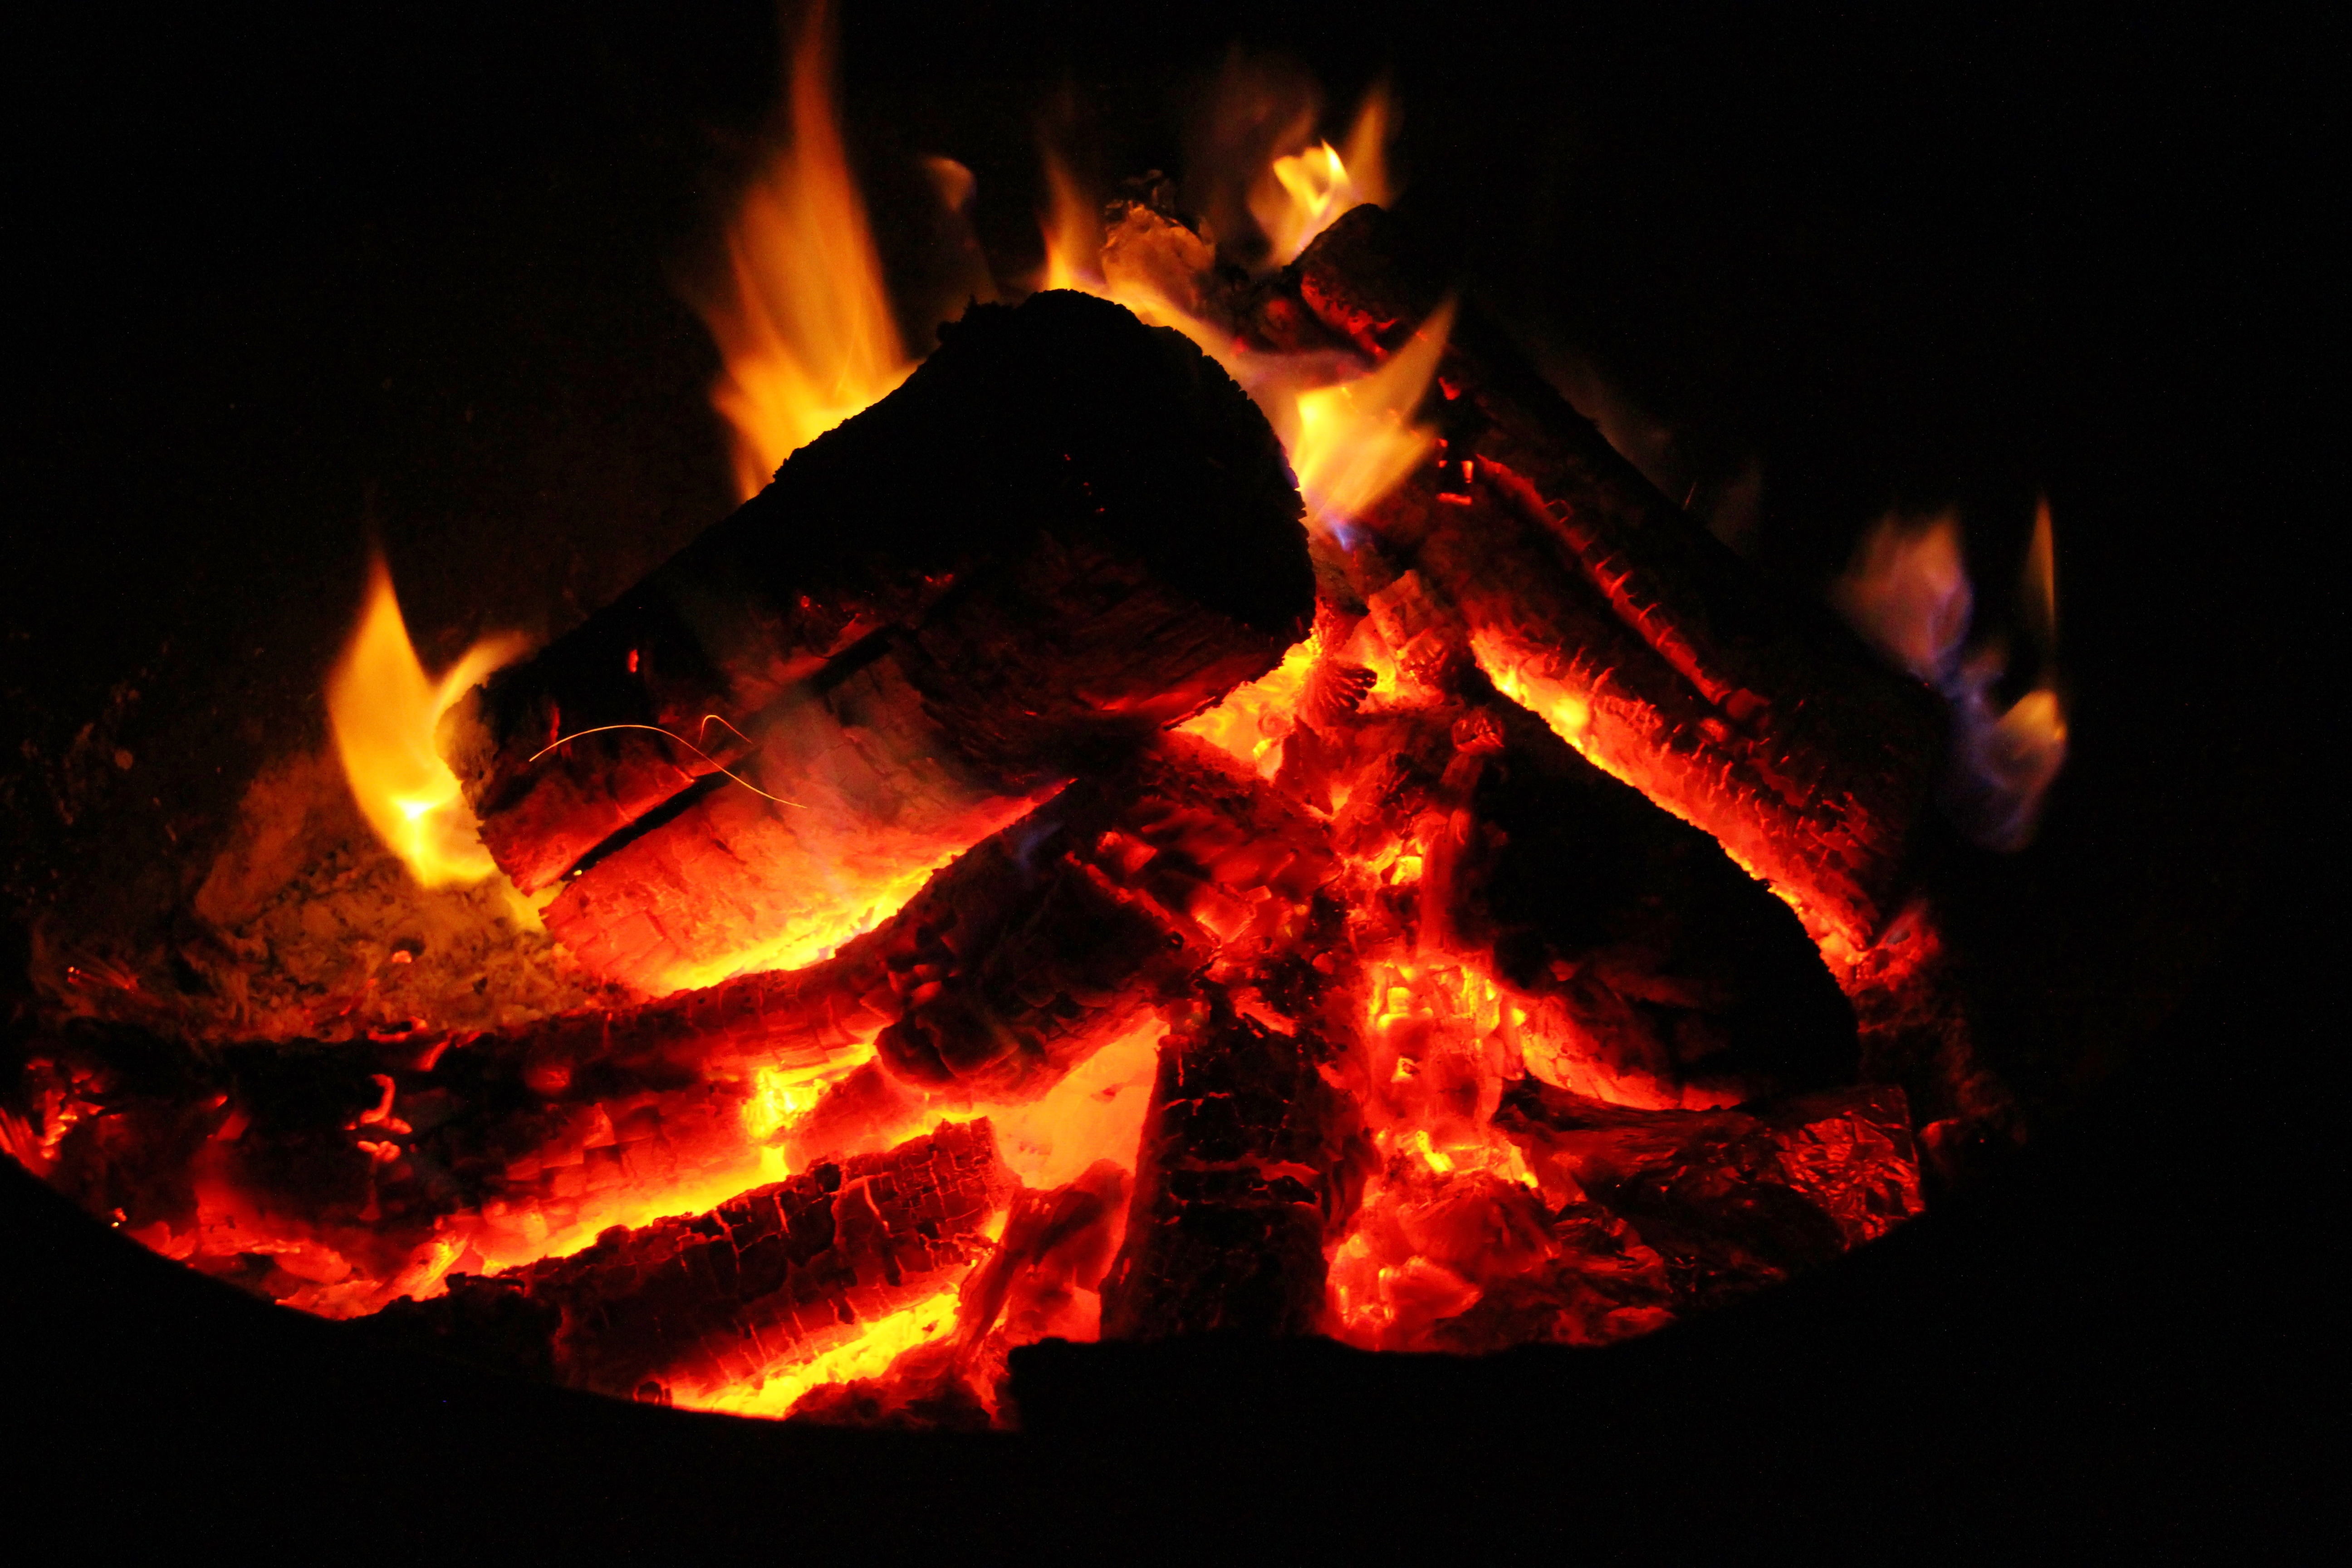 Free Images : outdoor, wood, warm, summer, orange, red, flame, fire ...